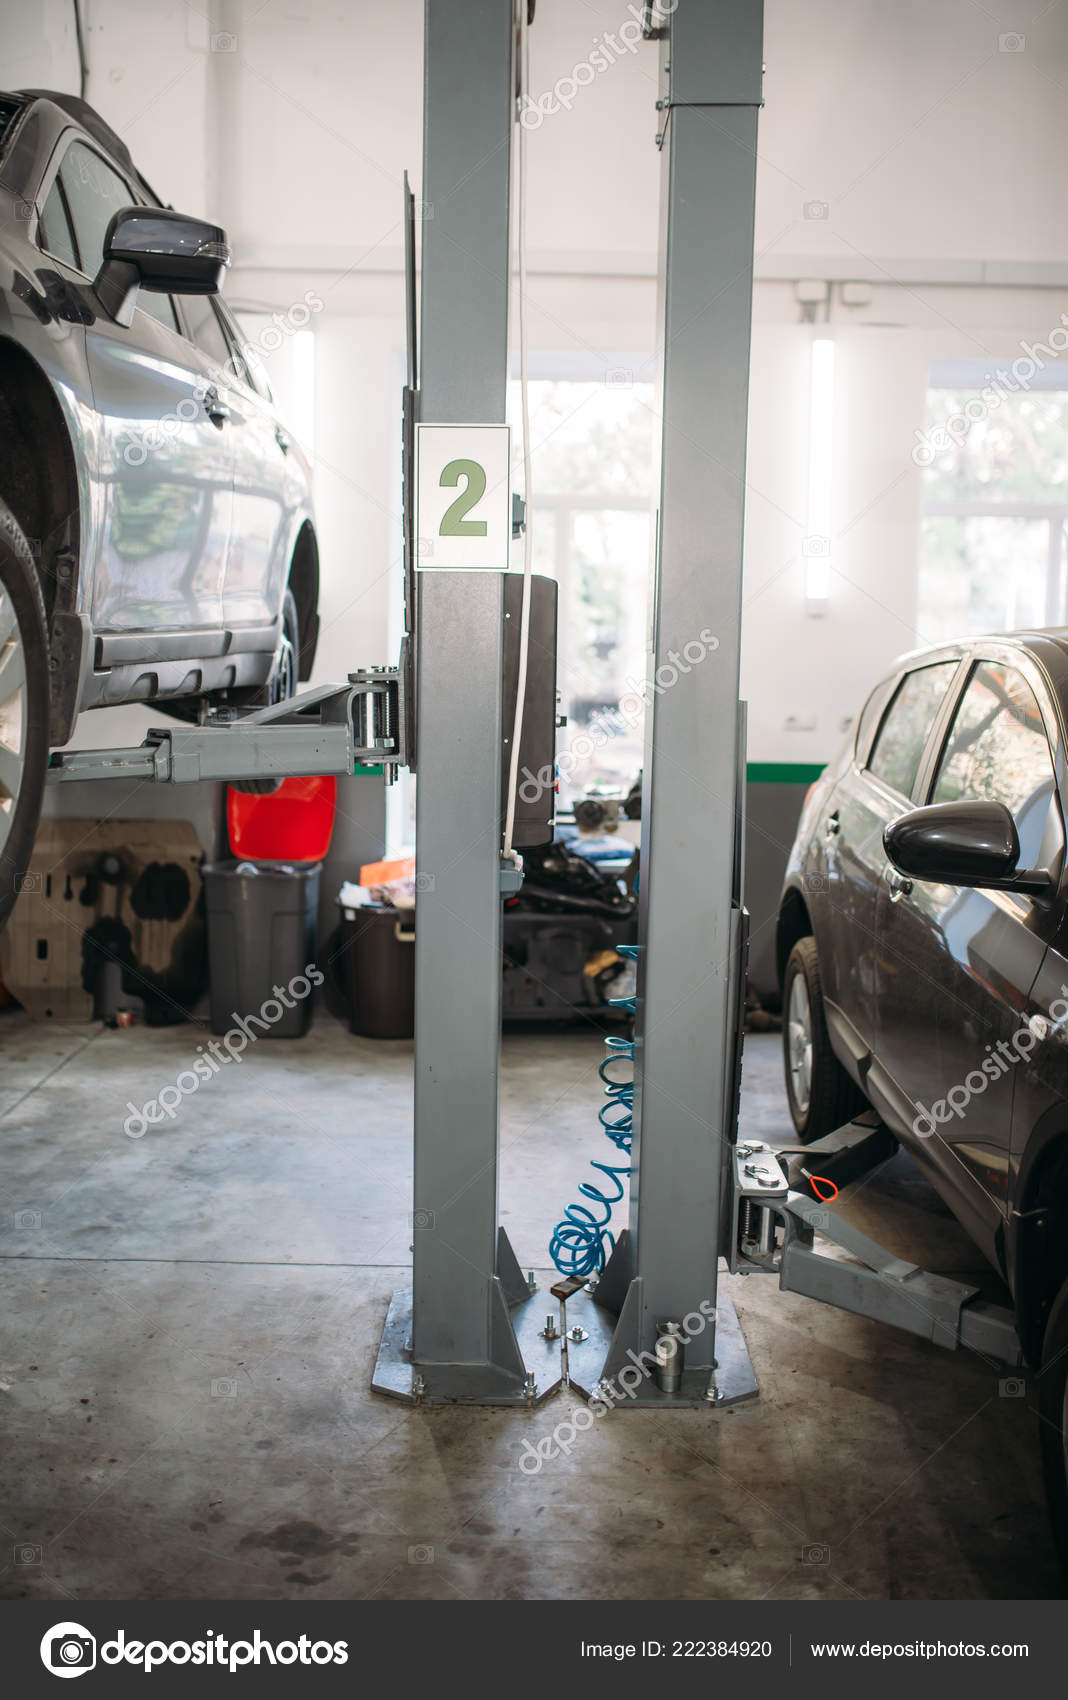 Car Lift In Garage Car Lift Garage Nobody Automobile Repair Vehicle Maintenance Tire